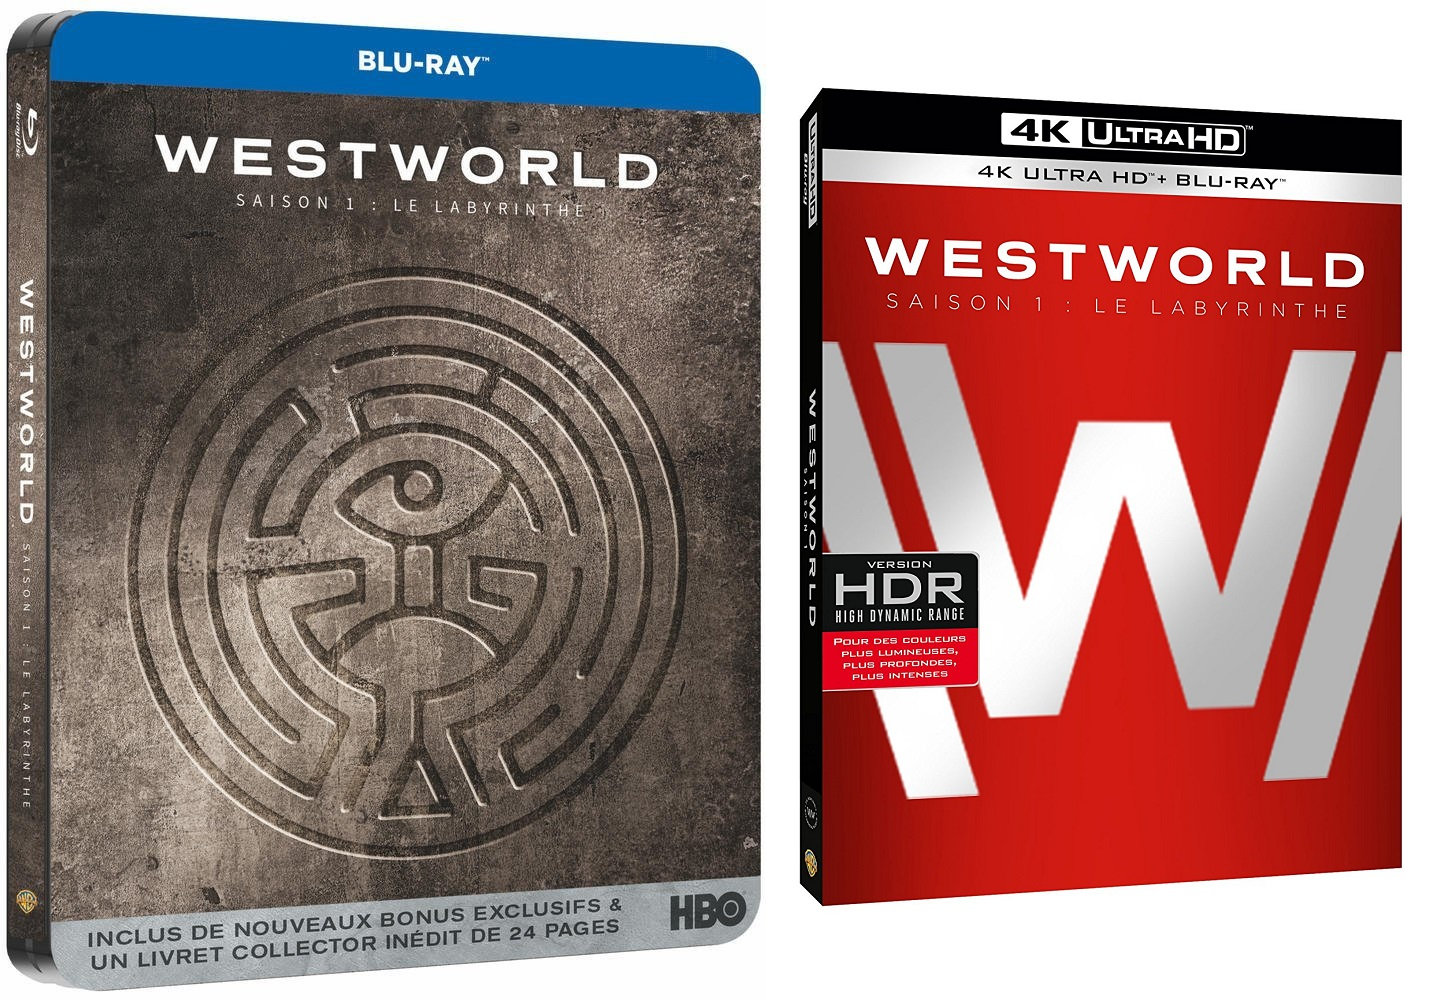 westworld saison 1 changement date de sortie les accros aux s ries. Black Bedroom Furniture Sets. Home Design Ideas